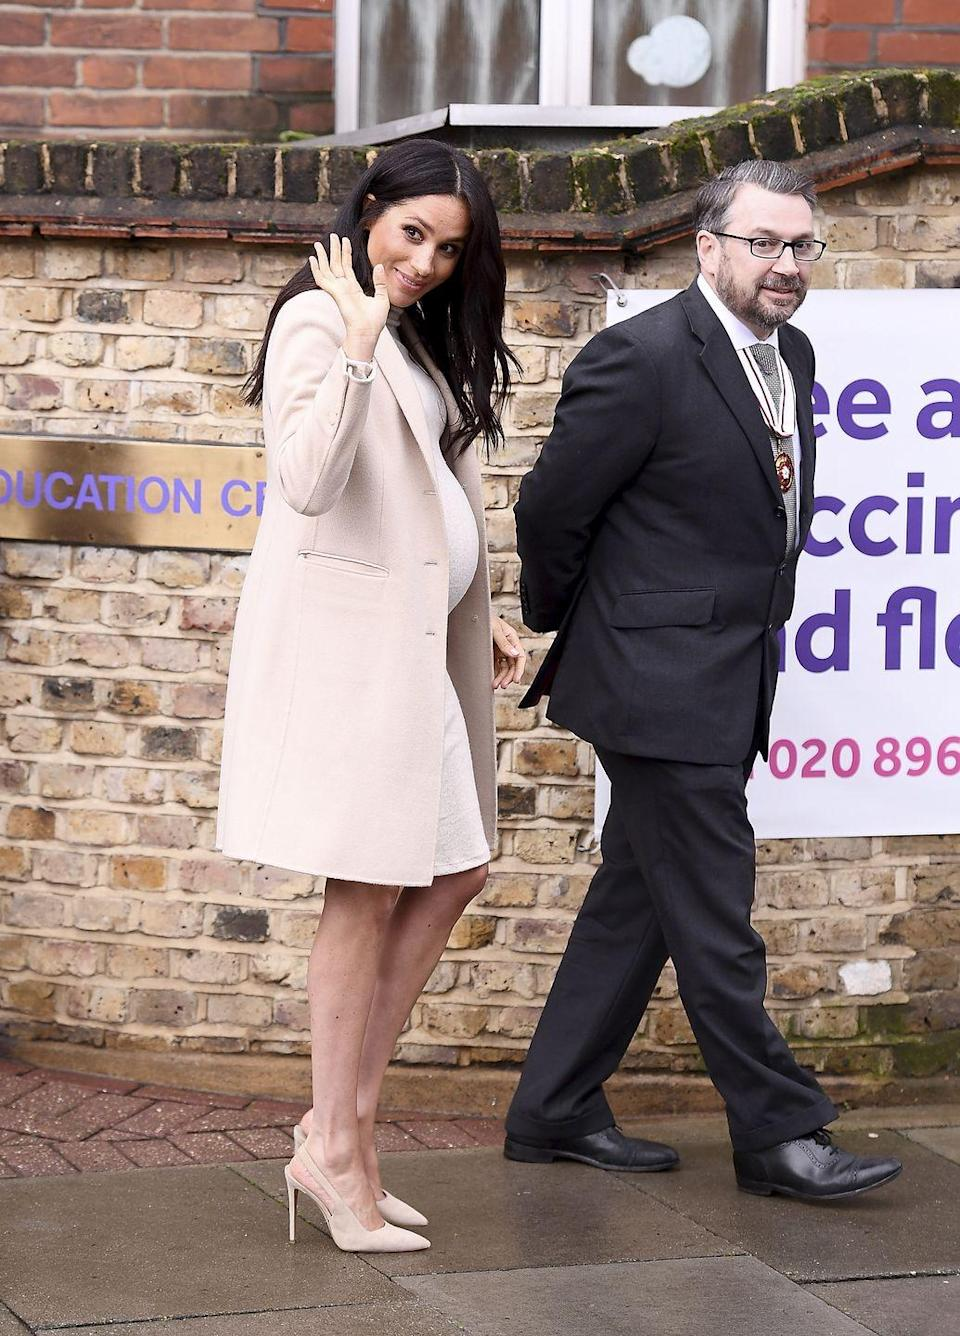 """<p>Meghan visited Mayhew, a grass-roots animal charity, and one of her new royal patronages, in London <a href=""""https://www.townandcountrymag.com/style/fashion-trends/a25906832/meghan-markle-mayhew-cream-hm-dress-photos/"""" rel=""""nofollow noopener"""" target=""""_blank"""" data-ylk=""""slk:wearing an affordable cream-colored"""" class=""""link rapid-noclick-resp"""">wearing an affordable cream-colored</a> maternity <a href=""""https://go.redirectingat.com?id=74968X1596630&url=https%3A%2F%2Fwww2.hm.com%2Fen_us%2Fproductpage.0669953003.html&sref=https%3A%2F%2Fwww.townandcountrymag.com%2Fstyle%2Ffashion-trends%2Fg3272%2Fmeghan-markle-preppy-style%2F"""" rel=""""nofollow noopener"""" target=""""_blank"""" data-ylk=""""slk:dress from H&M"""" class=""""link rapid-noclick-resp"""">dress from H&M</a> with a cashmere Armani coat and nude heels.</p><p><a class=""""link rapid-noclick-resp"""" href=""""https://go.redirectingat.com?id=74968X1596630&url=https%3A%2F%2Fwww2.hm.com%2Fen_us%2Fproductpage.0669953003.html&sref=https%3A%2F%2Fwww.townandcountrymag.com%2Fstyle%2Ffashion-trends%2Fg3272%2Fmeghan-markle-preppy-style%2F"""" rel=""""nofollow noopener"""" target=""""_blank"""" data-ylk=""""slk:SHOP NOW"""">SHOP NOW</a> <em>H&M Mama Fine-Knit Dress, $34.99</em></p>"""